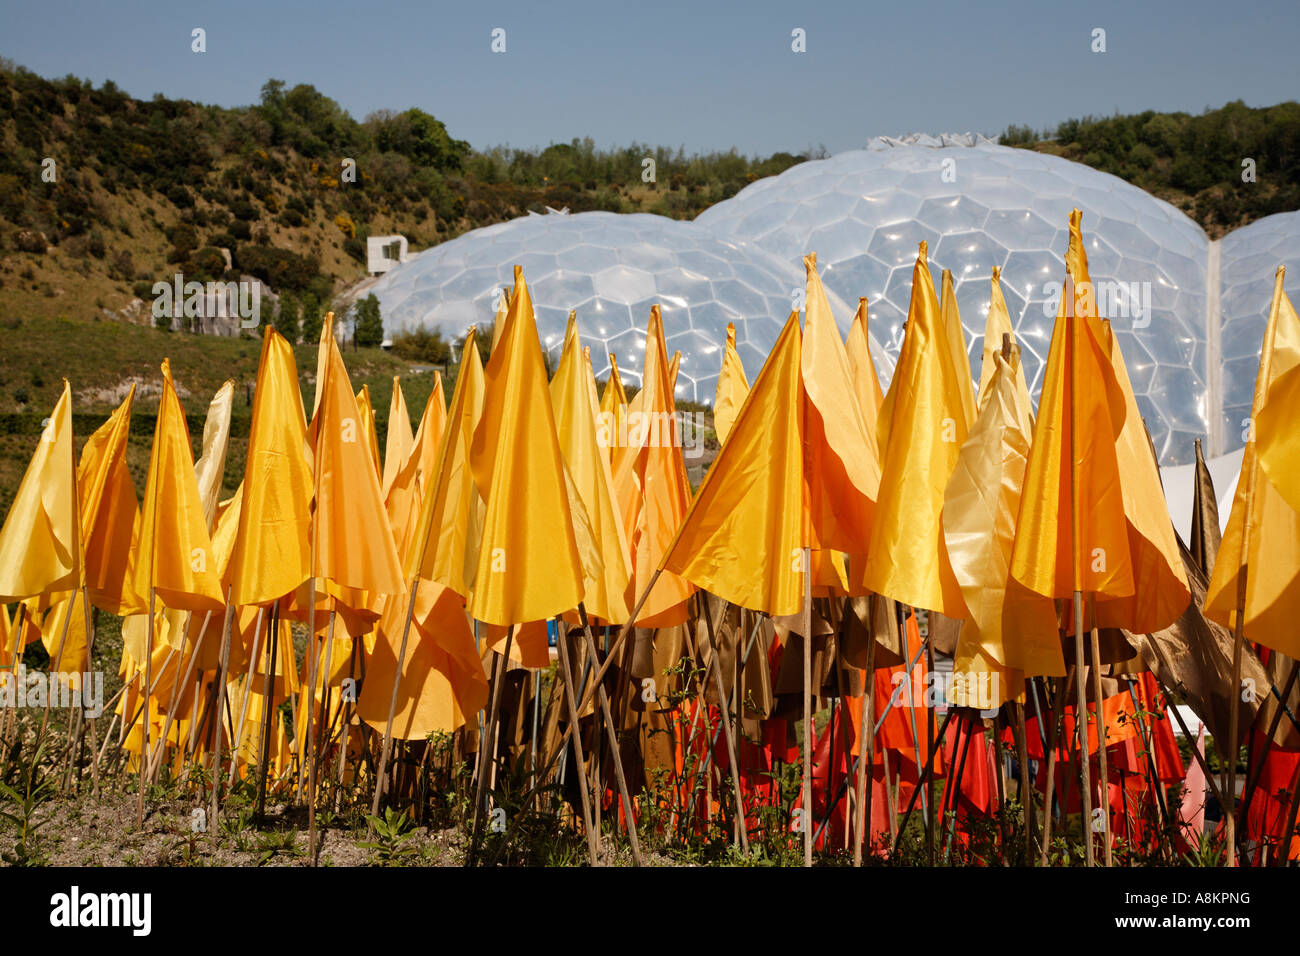 Plastic Flowers At The Eden Project Cornwall U.K. Europe - Stock Image